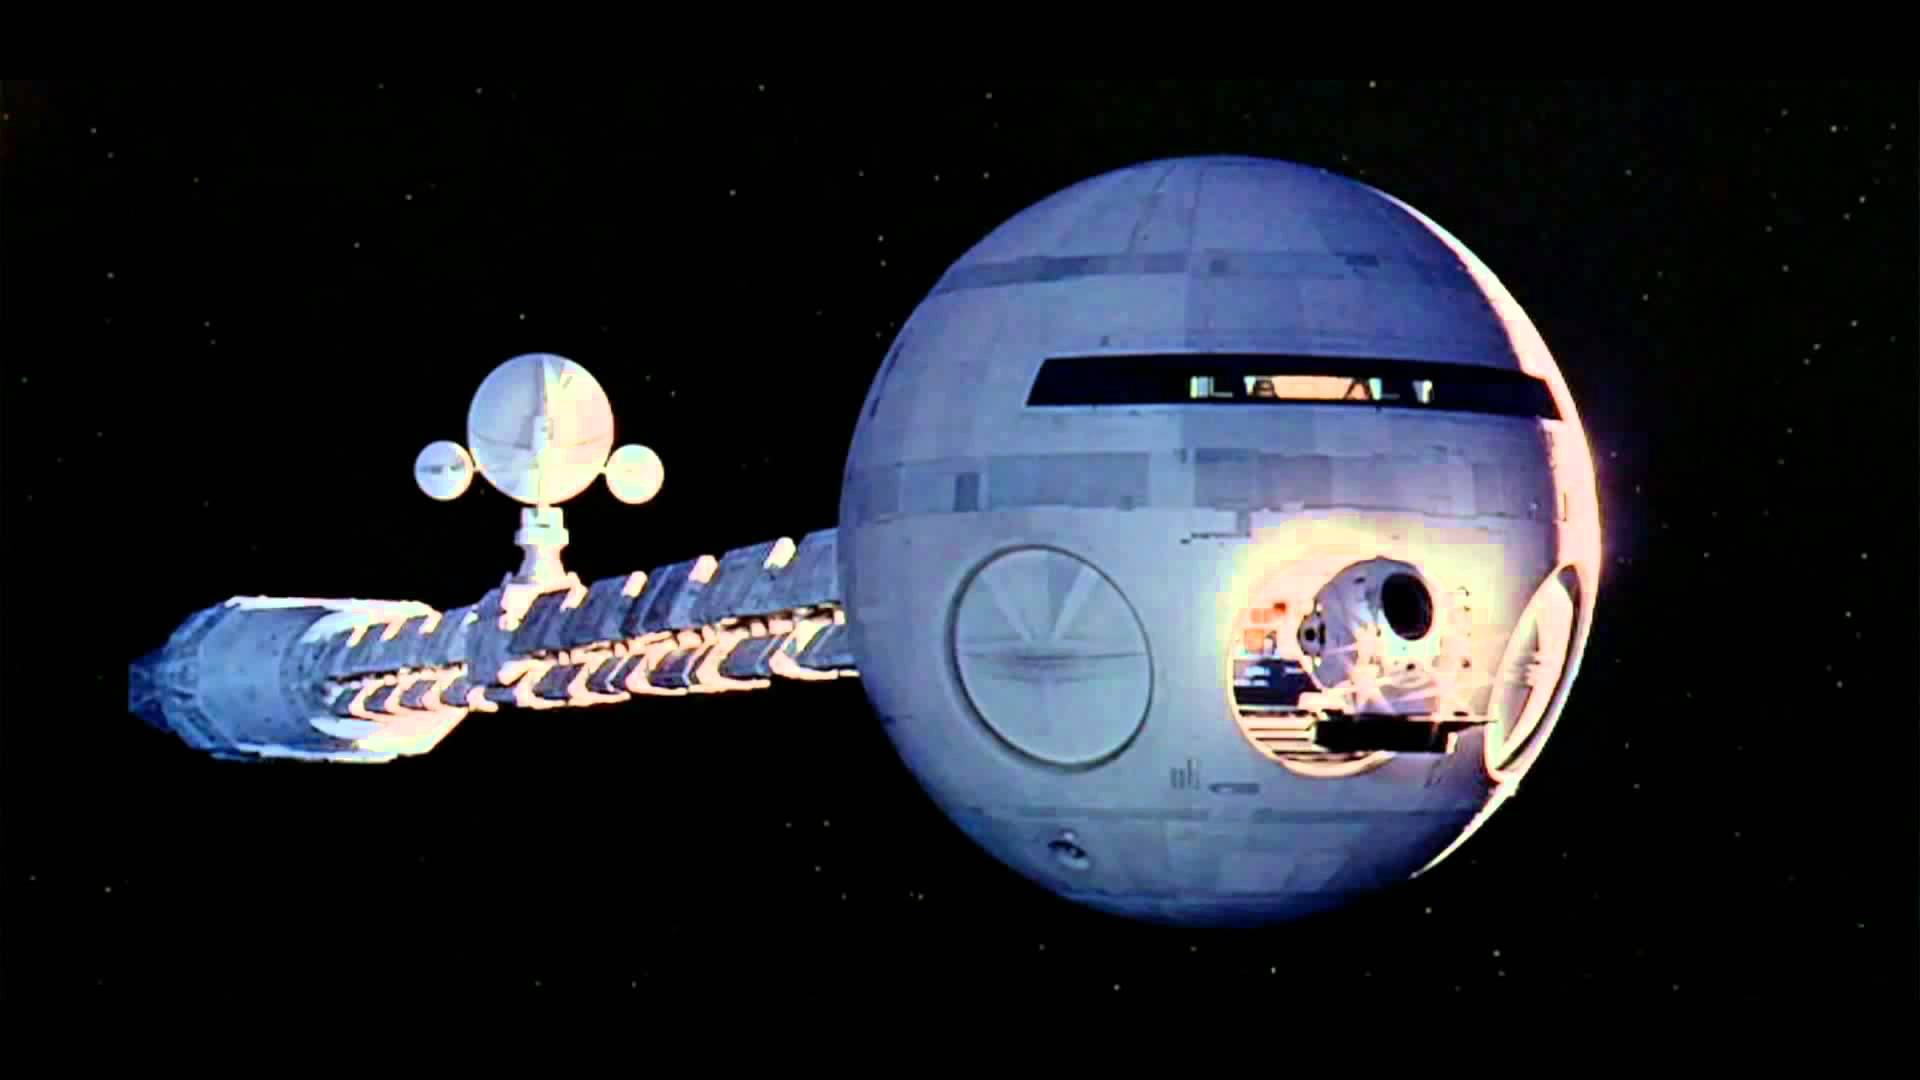 2001 a space odyssey wallpapers high quality download free - 2001 a space odyssey wallpaper ...